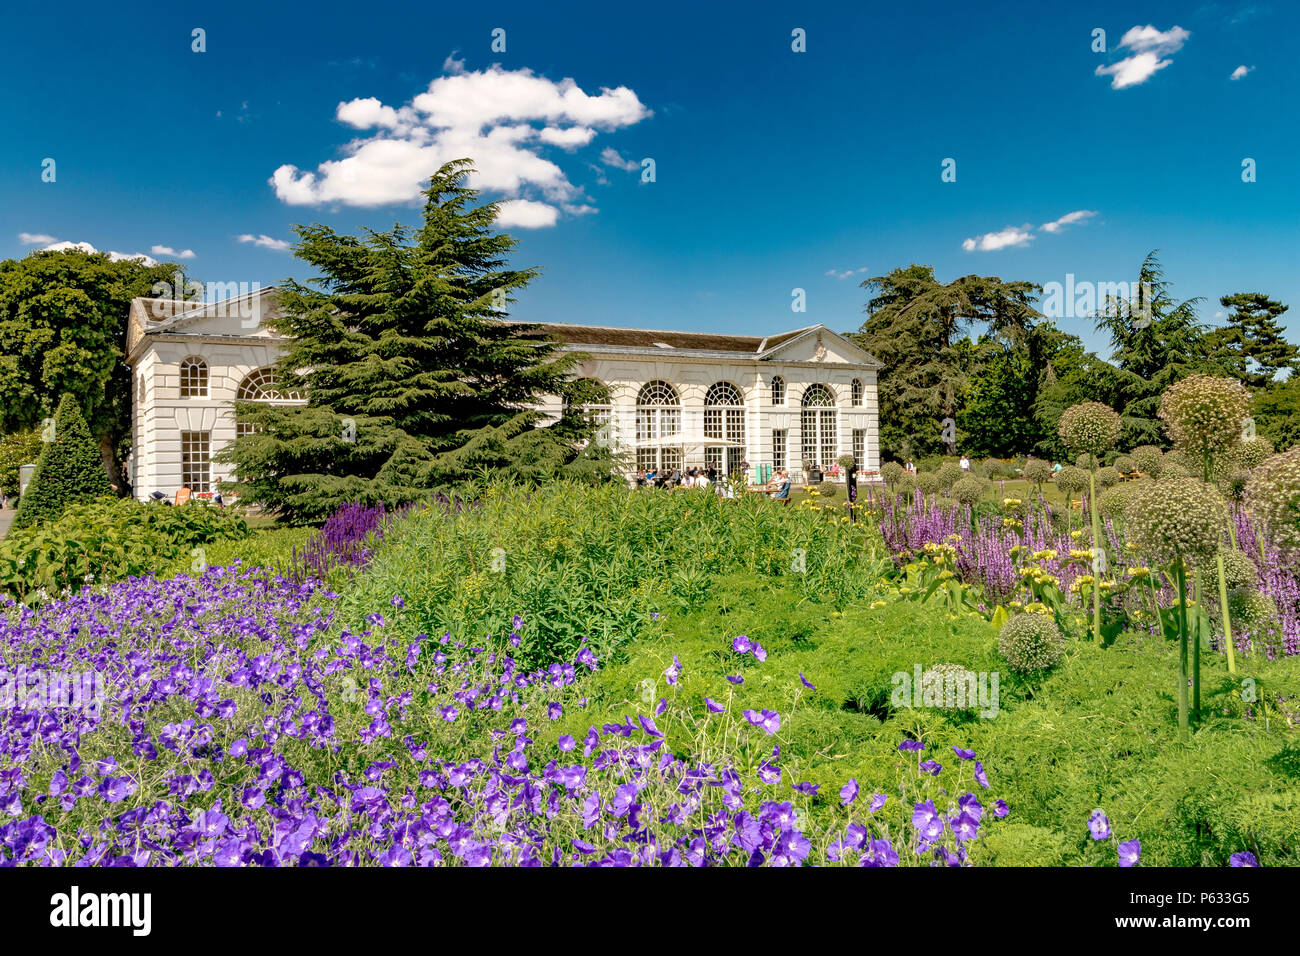 The Orangery At The Royal Botanic Gardens, Kew - Stock Image